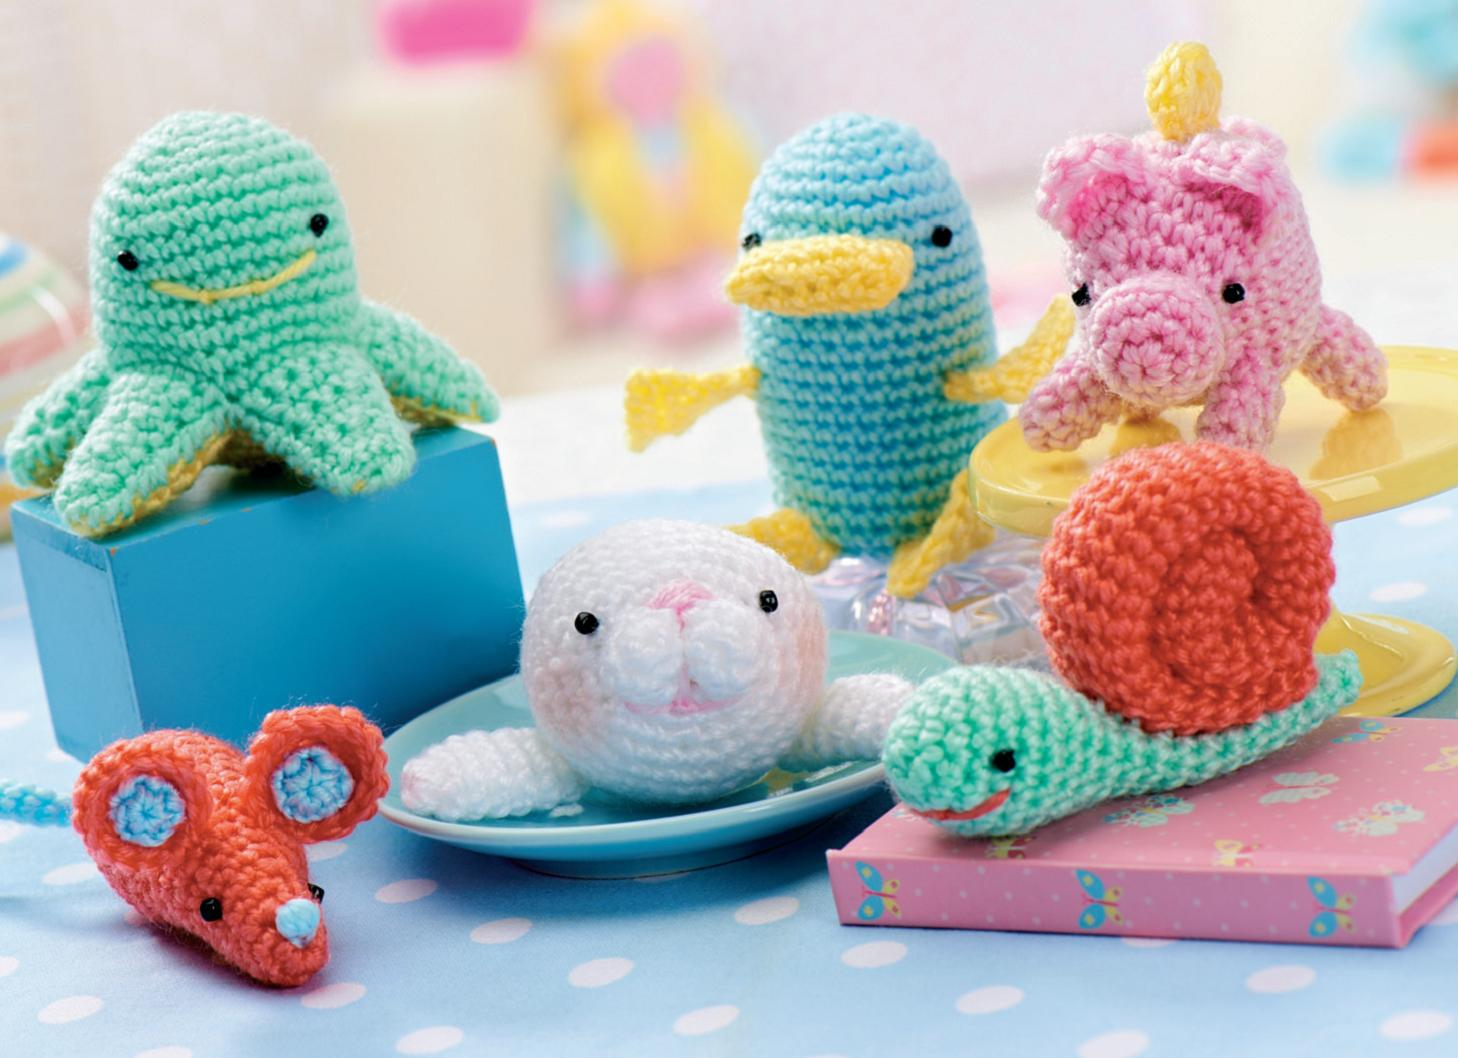 Best Free Crochet Patterns Online : Amigurumi creatures Crochet Pattern